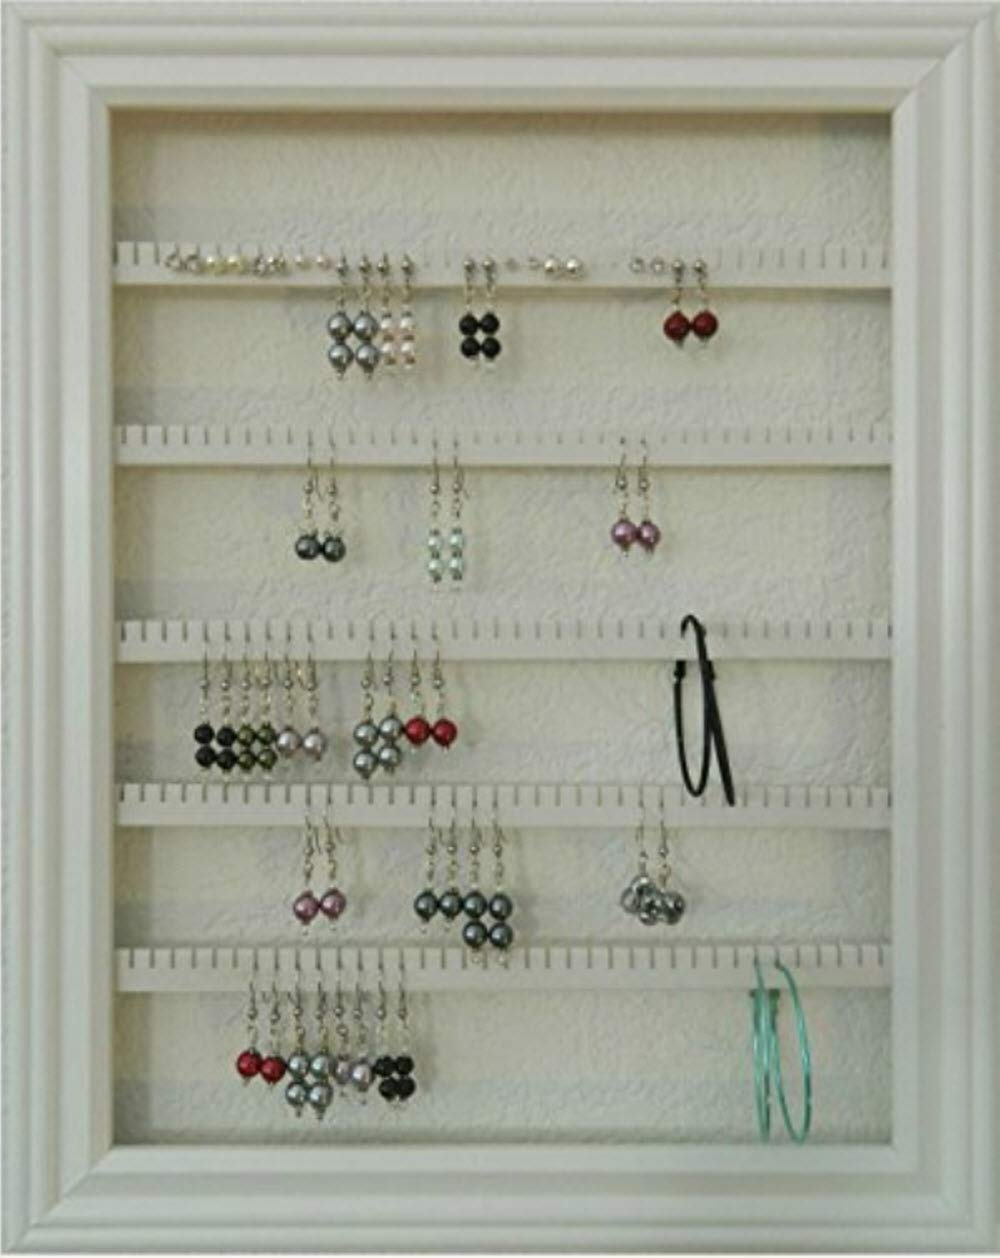 Earring Holder Organizer Storage Jewelry Rack - Wall Mounted Picture Frame Hanging Jewelry Display - Available in White, Medium